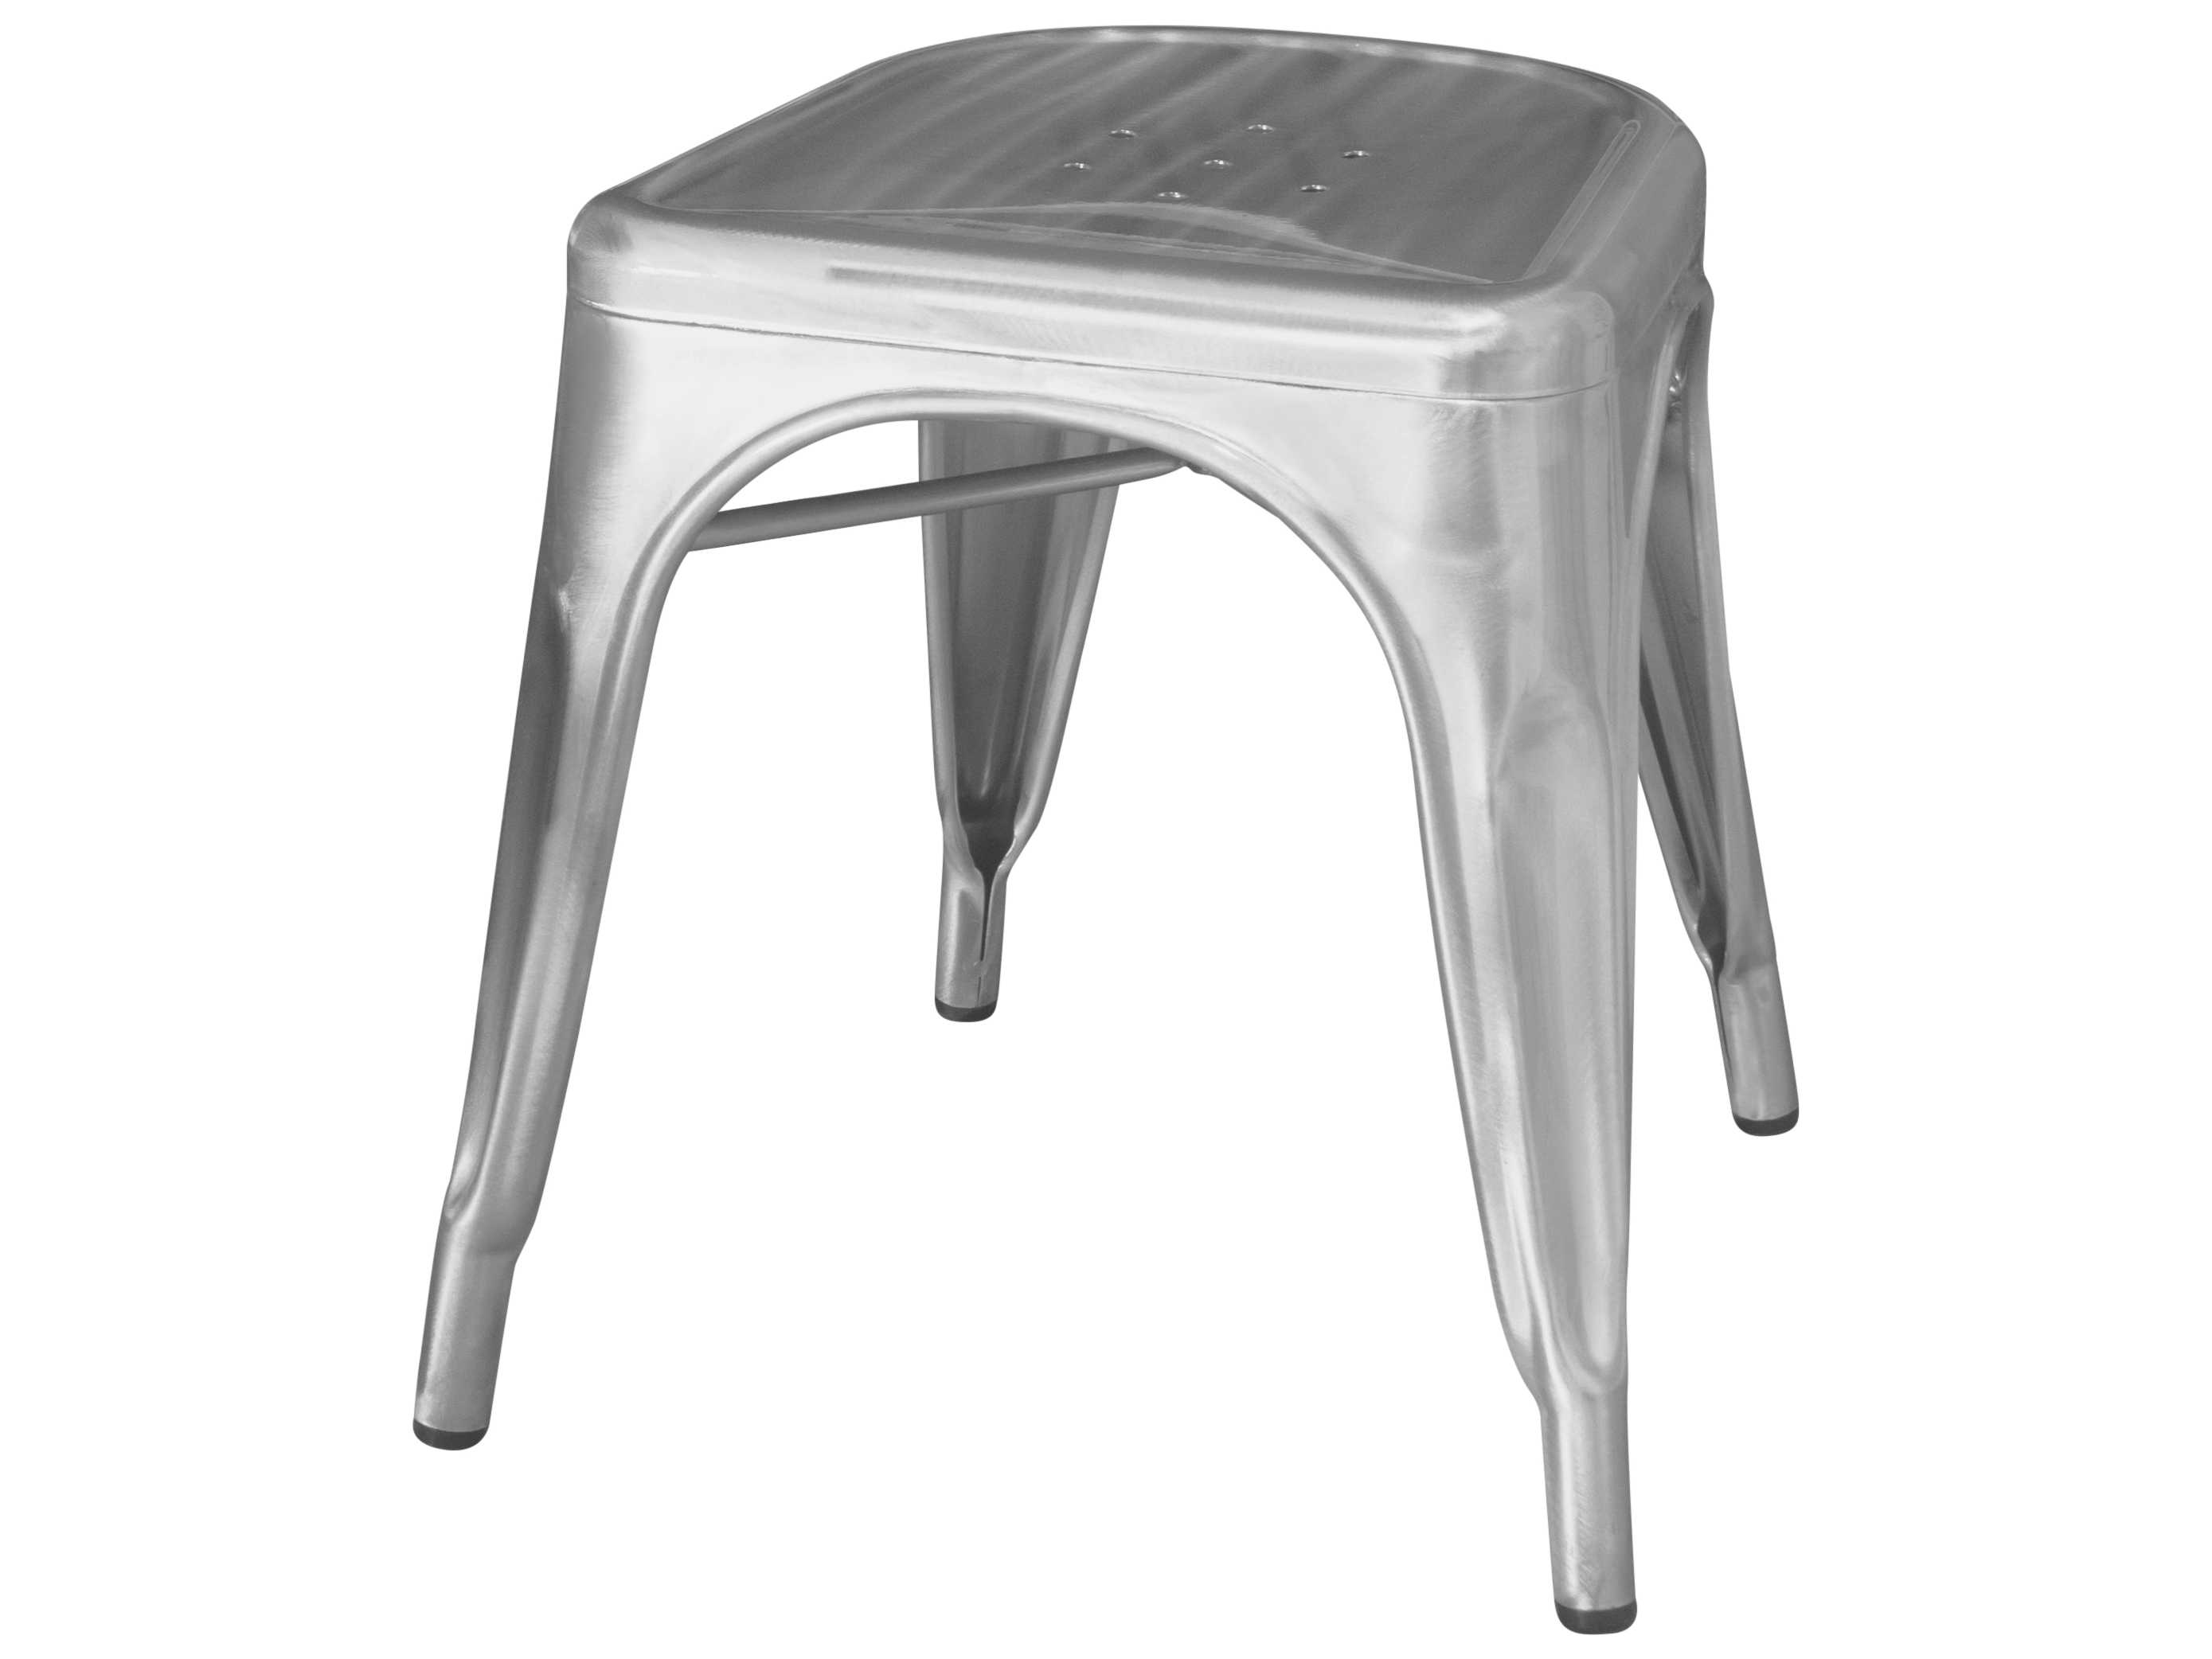 source outdoor furniture fremont source outdoor furniture fremont steel dining height stool sc 1801 161 buy source outdoor circa